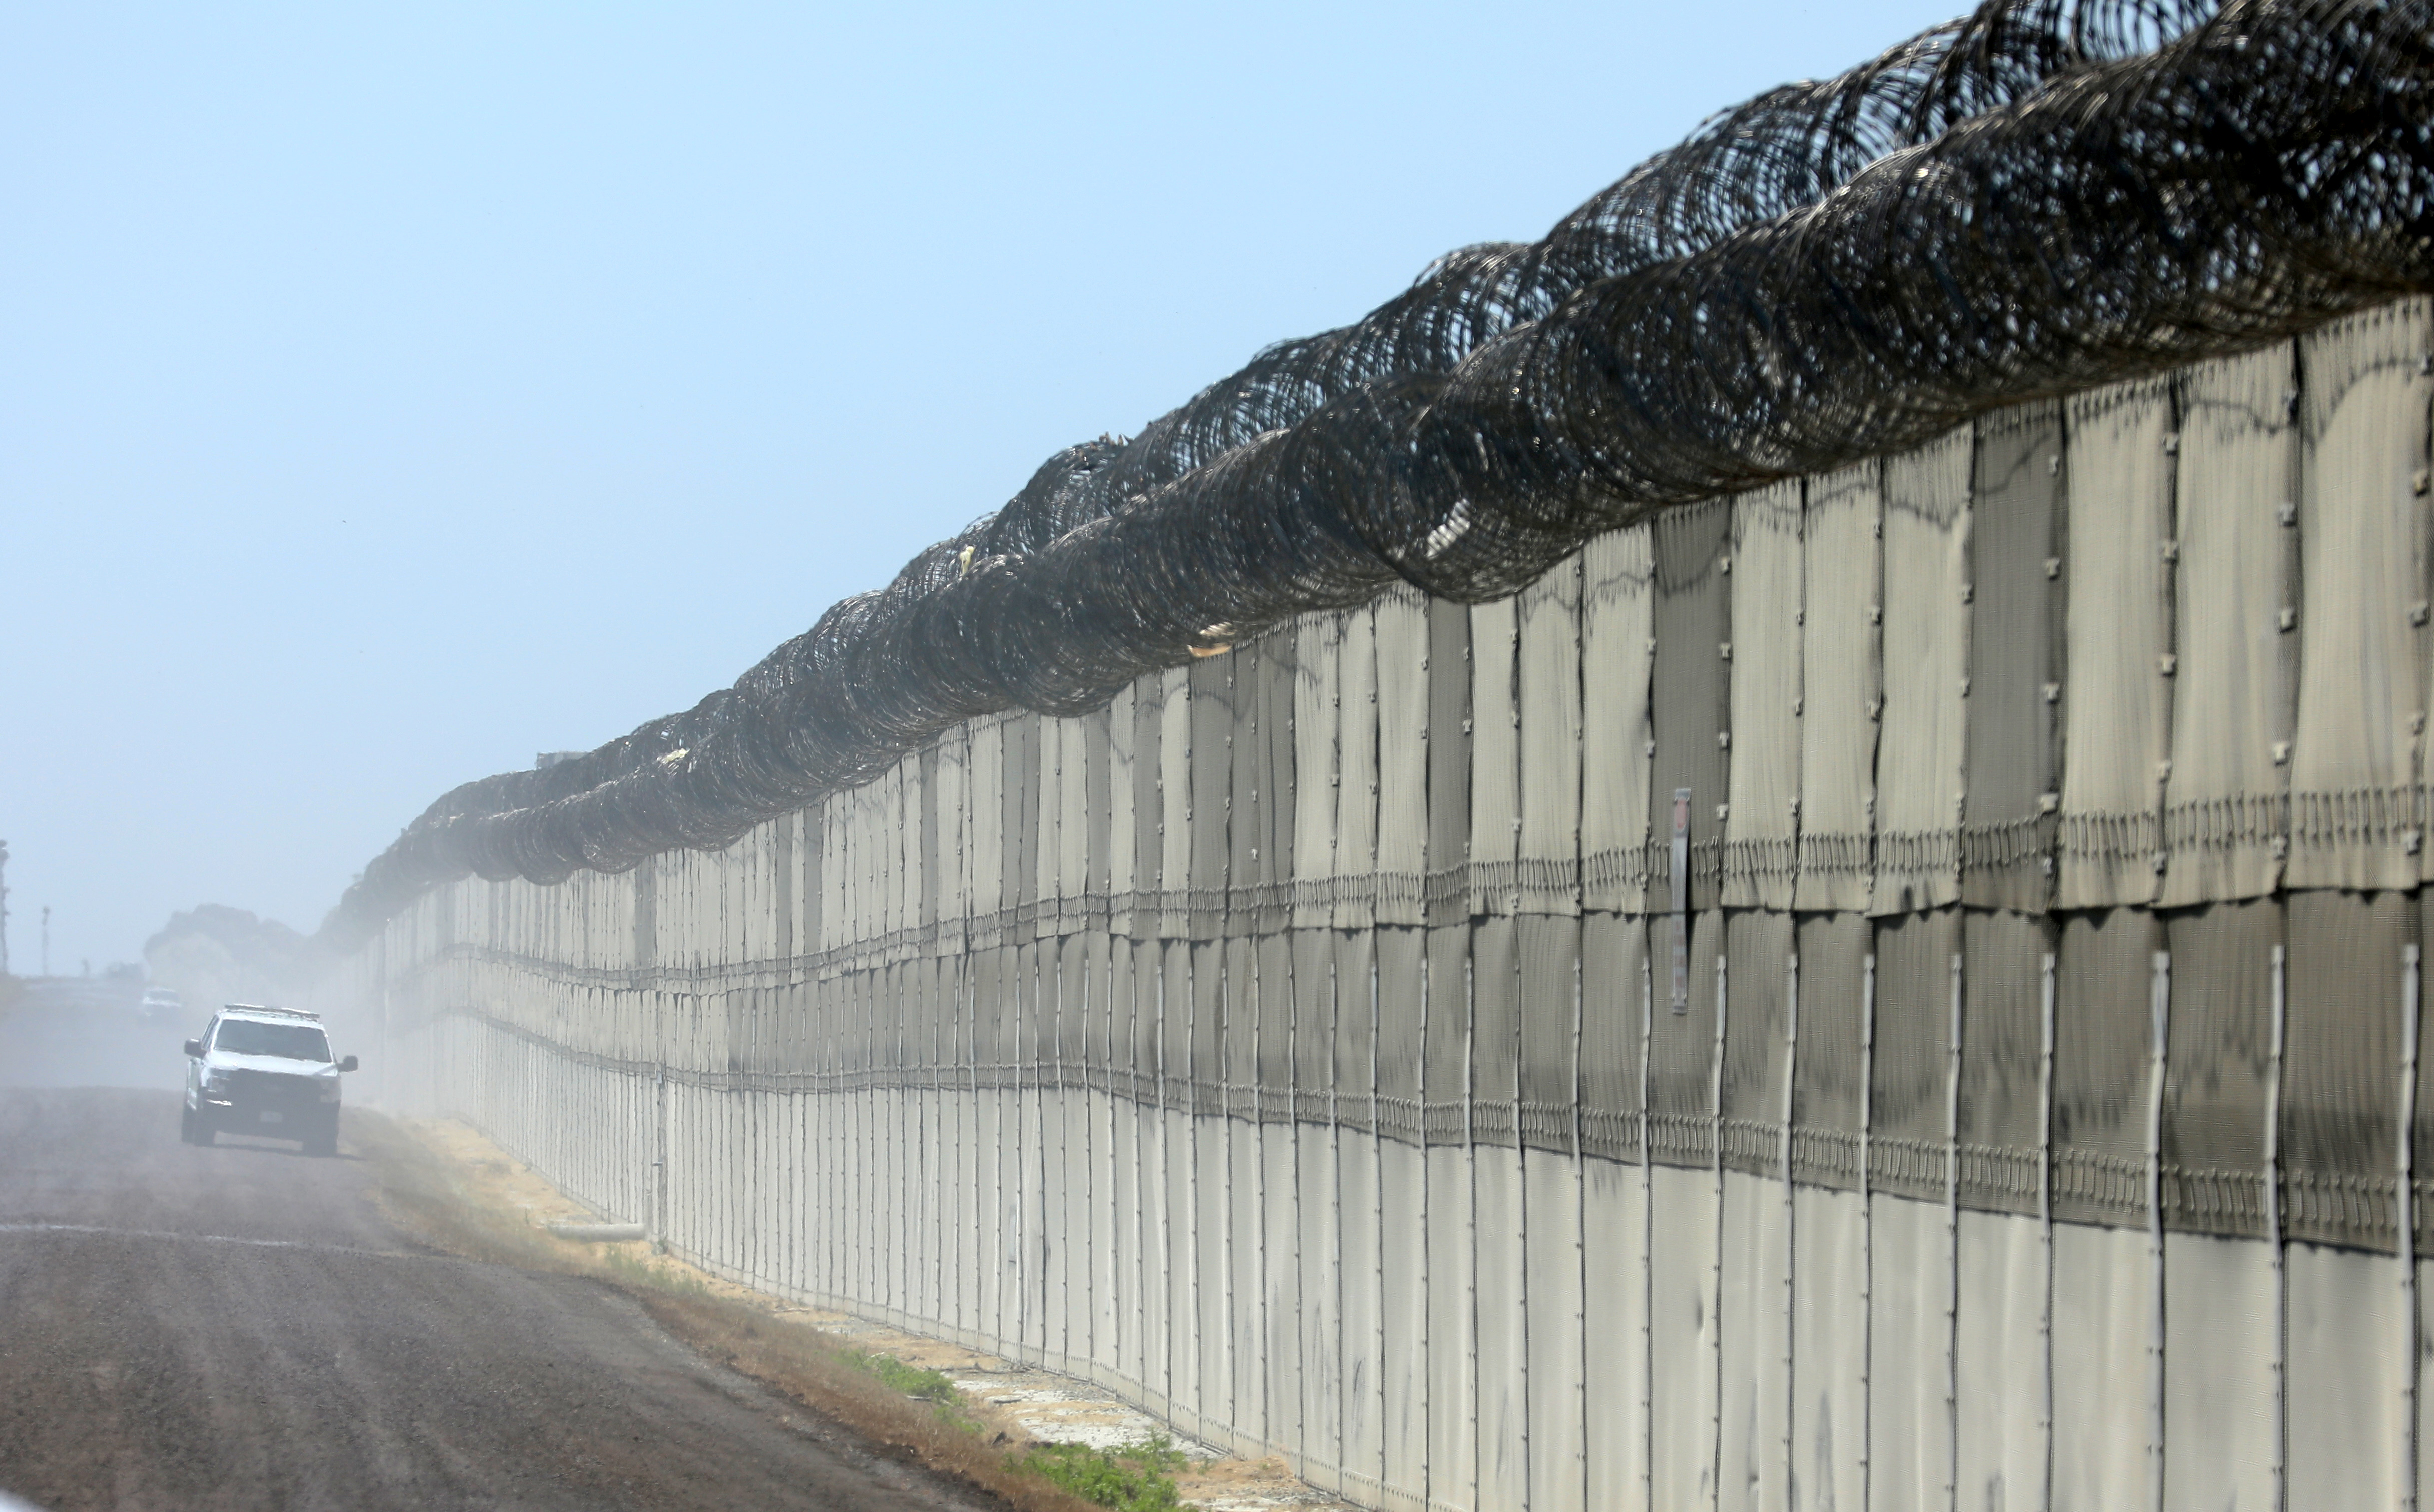 A U.S. Customs and Border Patrol officer patrols along the secondary fence between the U.S. and Mexico in San Diego, California, U.S. April 21, 2017.